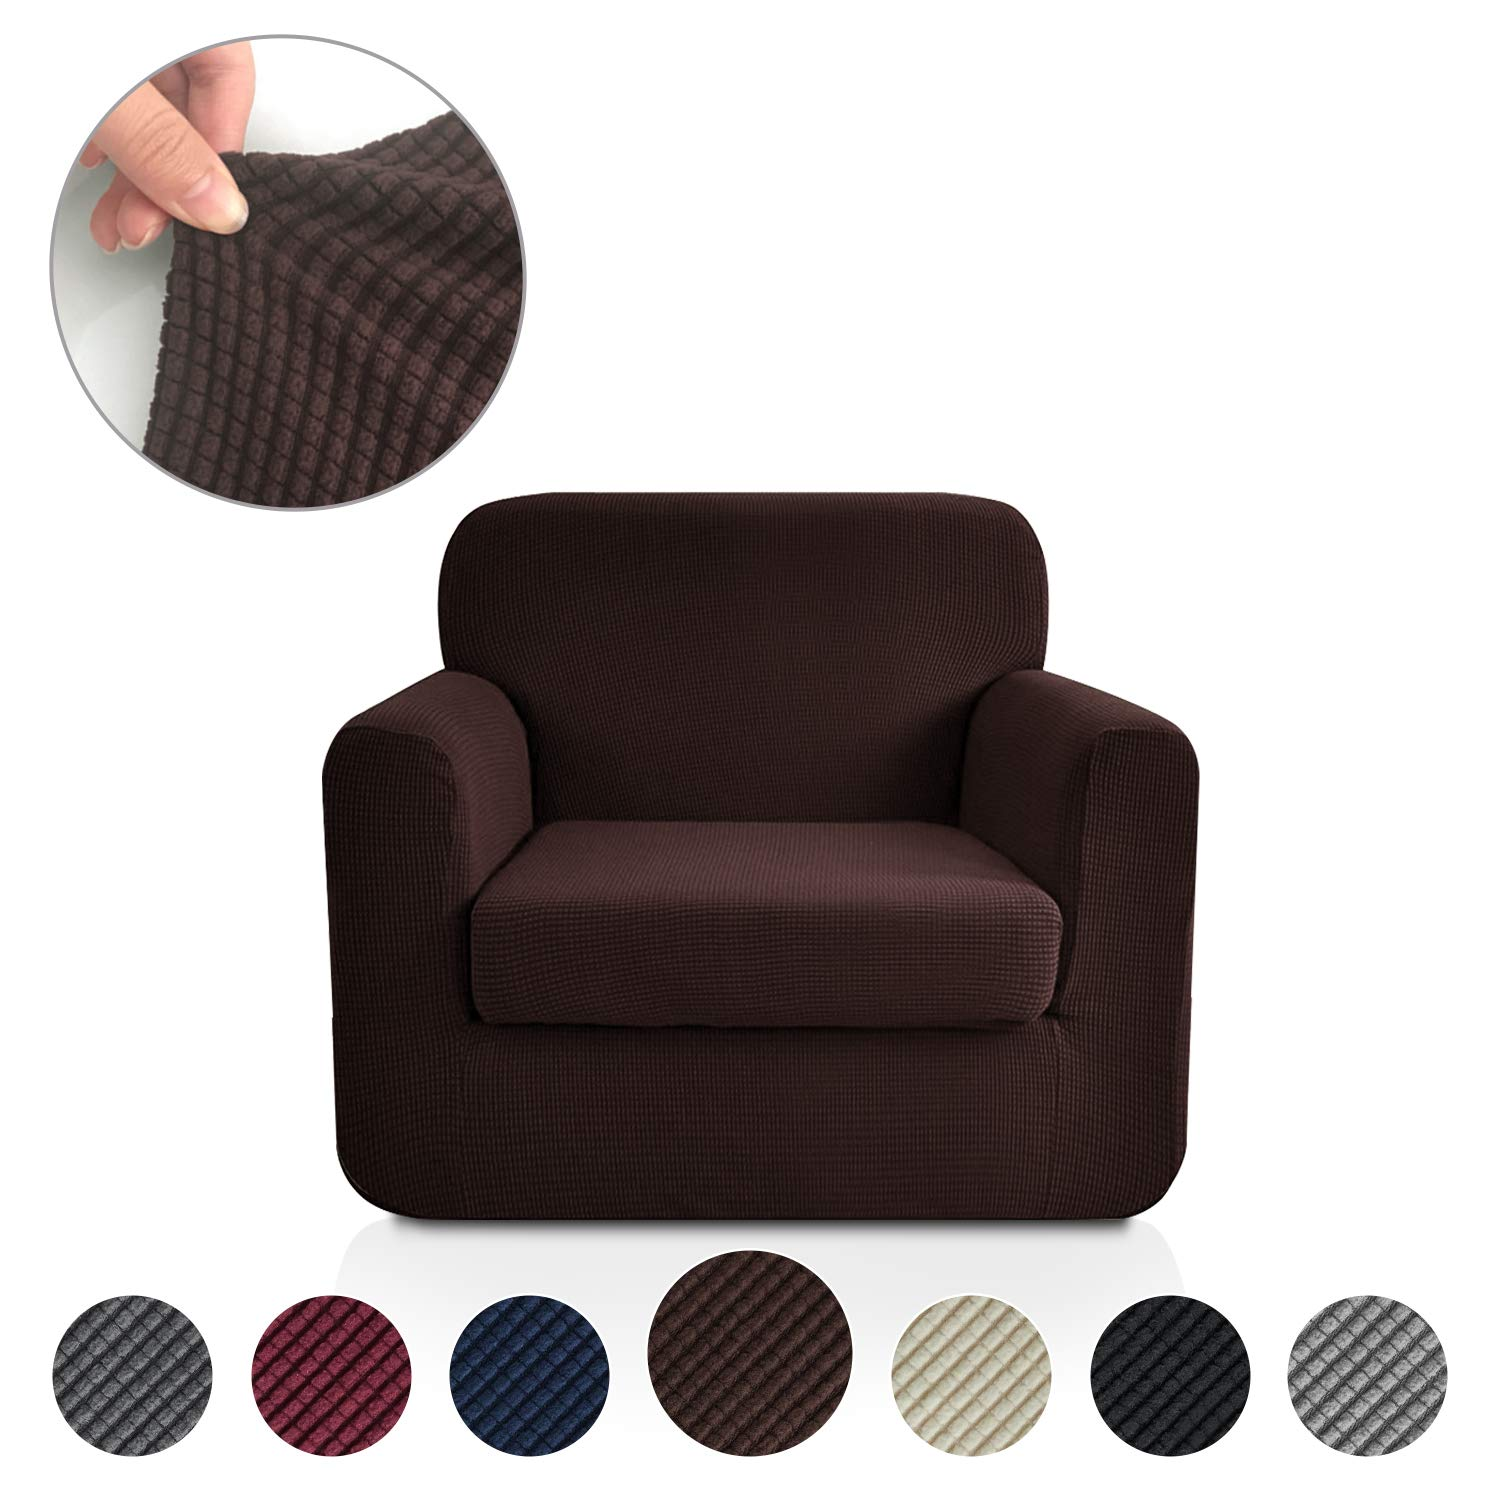 RHF Jacquard Stretch 2-Piece Sofa Cover, 2-Piece Slipcover for Leather Couch-Polyester Spandex Sofa Slipcover&Couch cover for dogs, 2-Piece sofa protector(Chair: Chocolate)